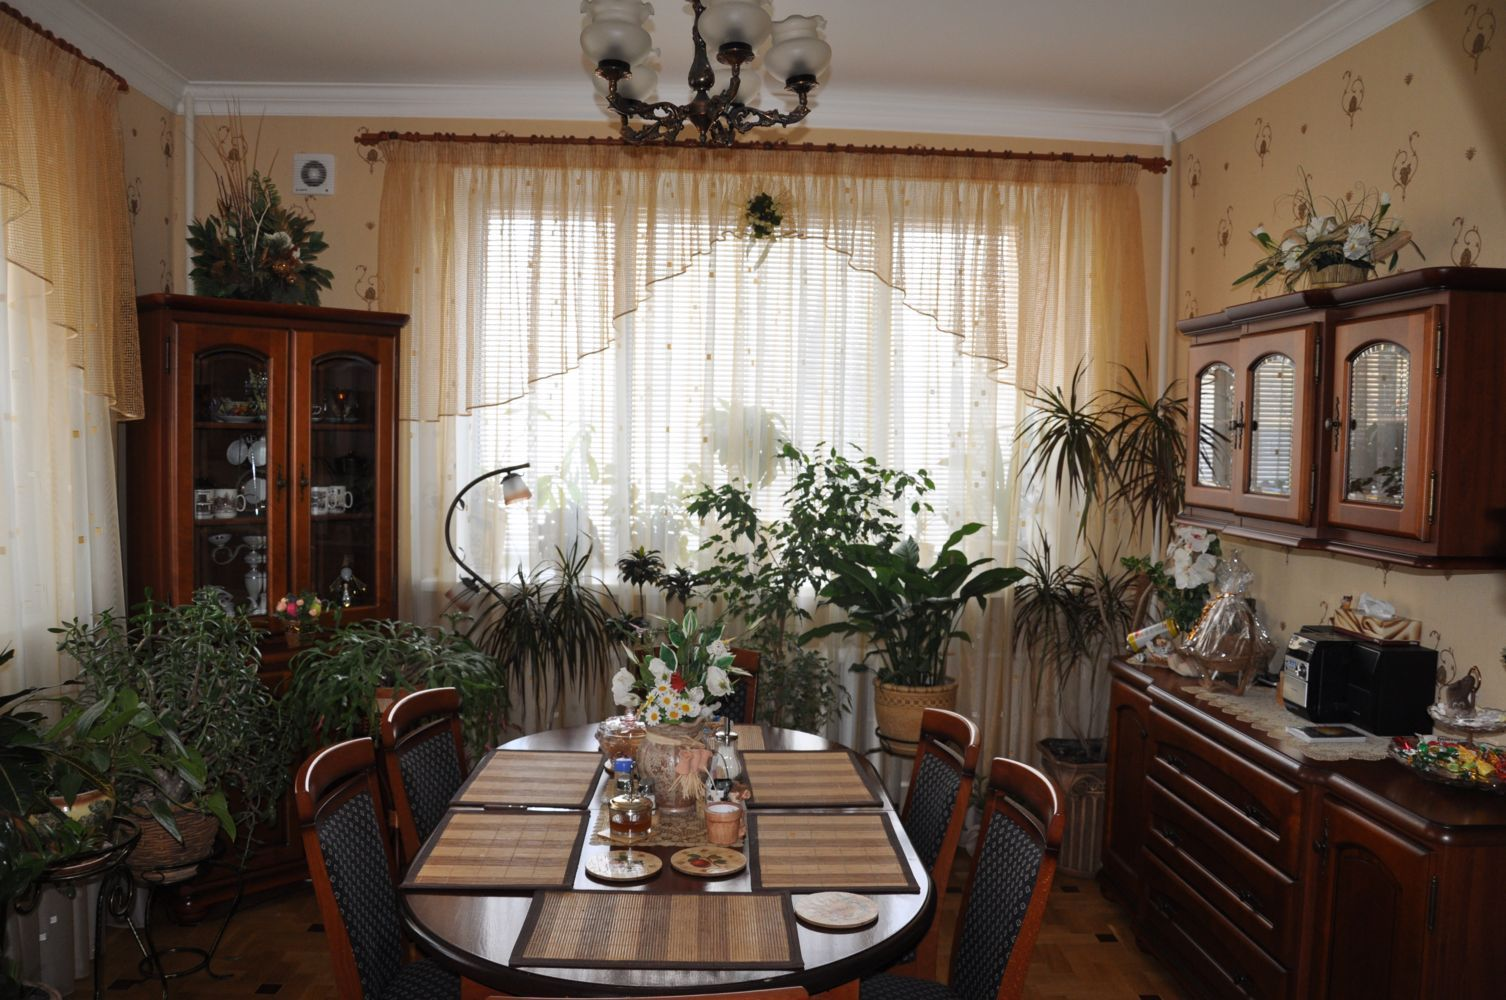 20 small design ideas for your dining